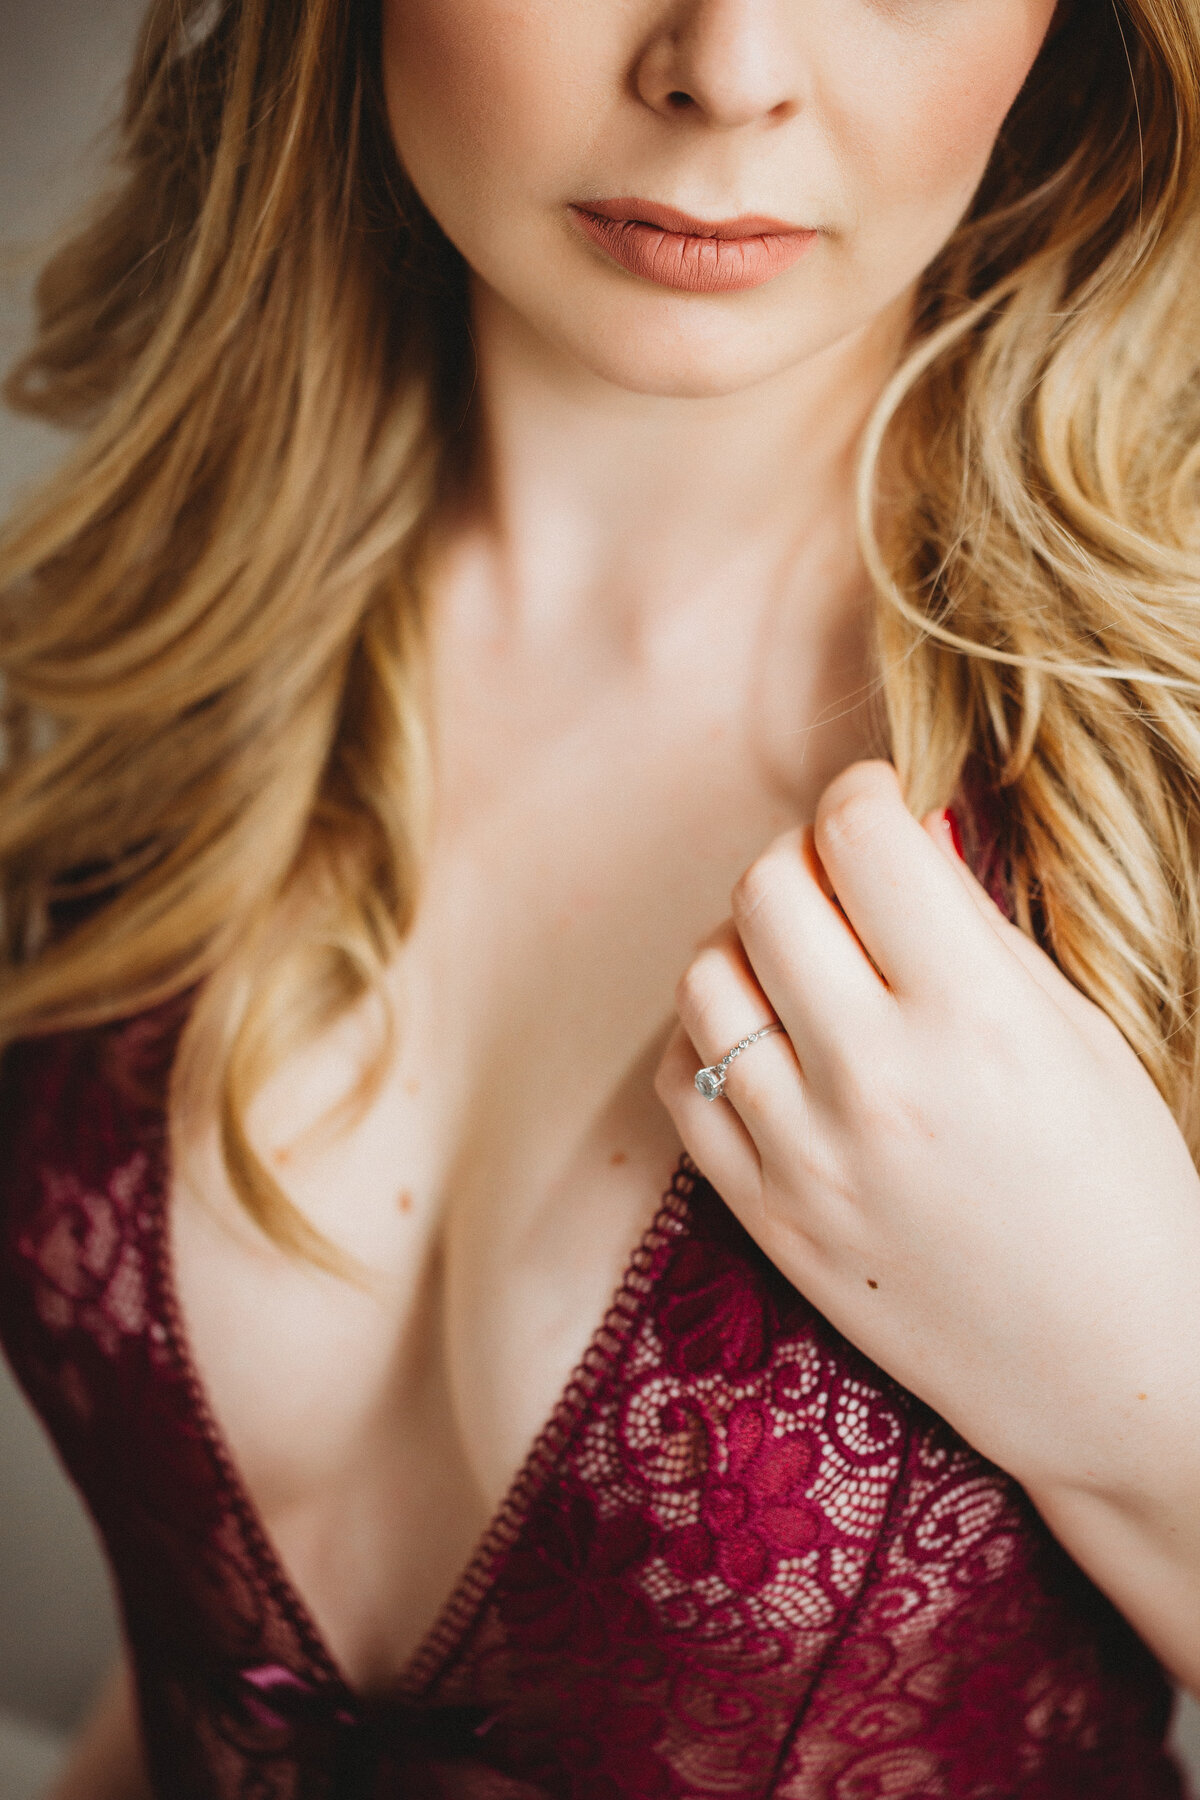 thousand-oaks-boudoir-0407